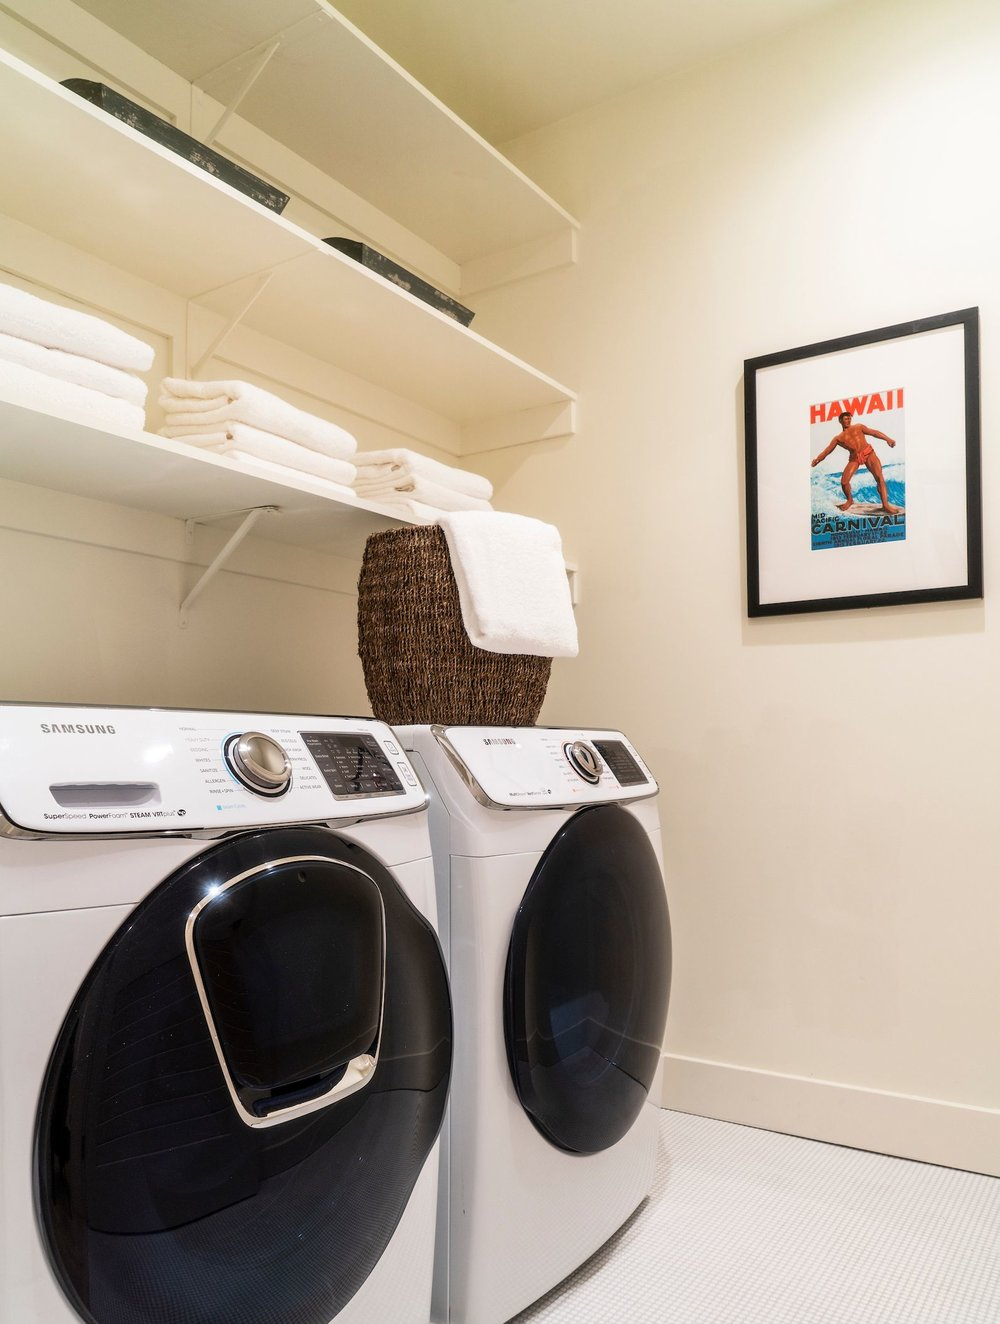 Maximus_The Pointe at Cove_4Bdrm_In Home Laundry Full Size Washer and Dryer_1207_184026.jpg